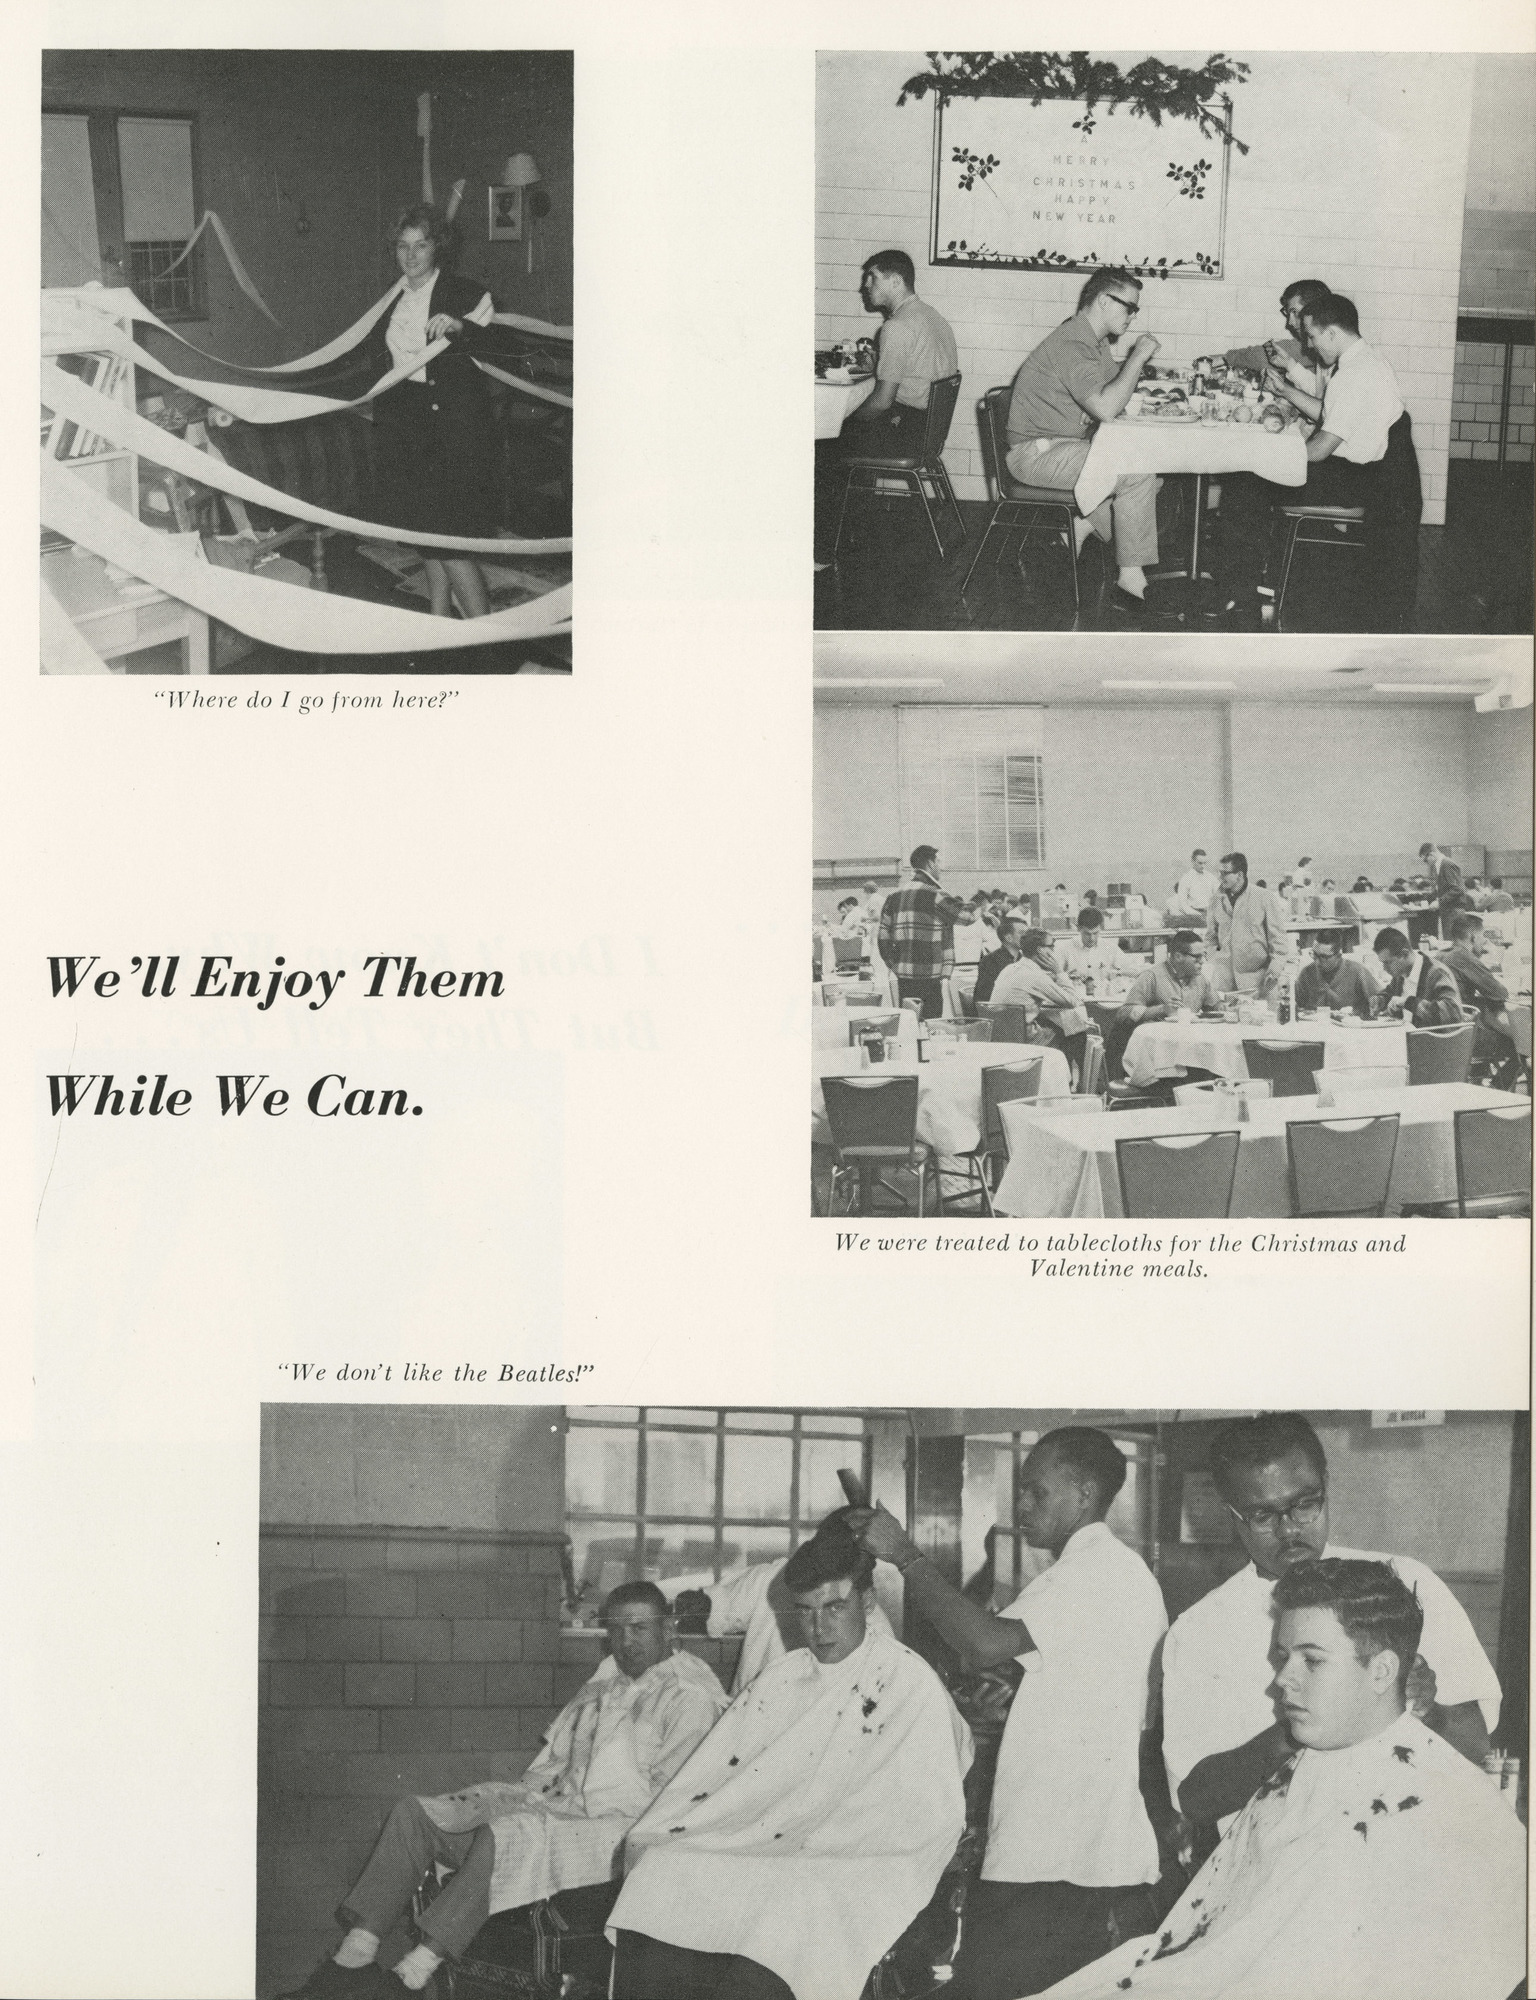 http://spec.lib.vt.edu/pickup/Omeka_upload/Bugle1964_pg207_Barbers.jpg